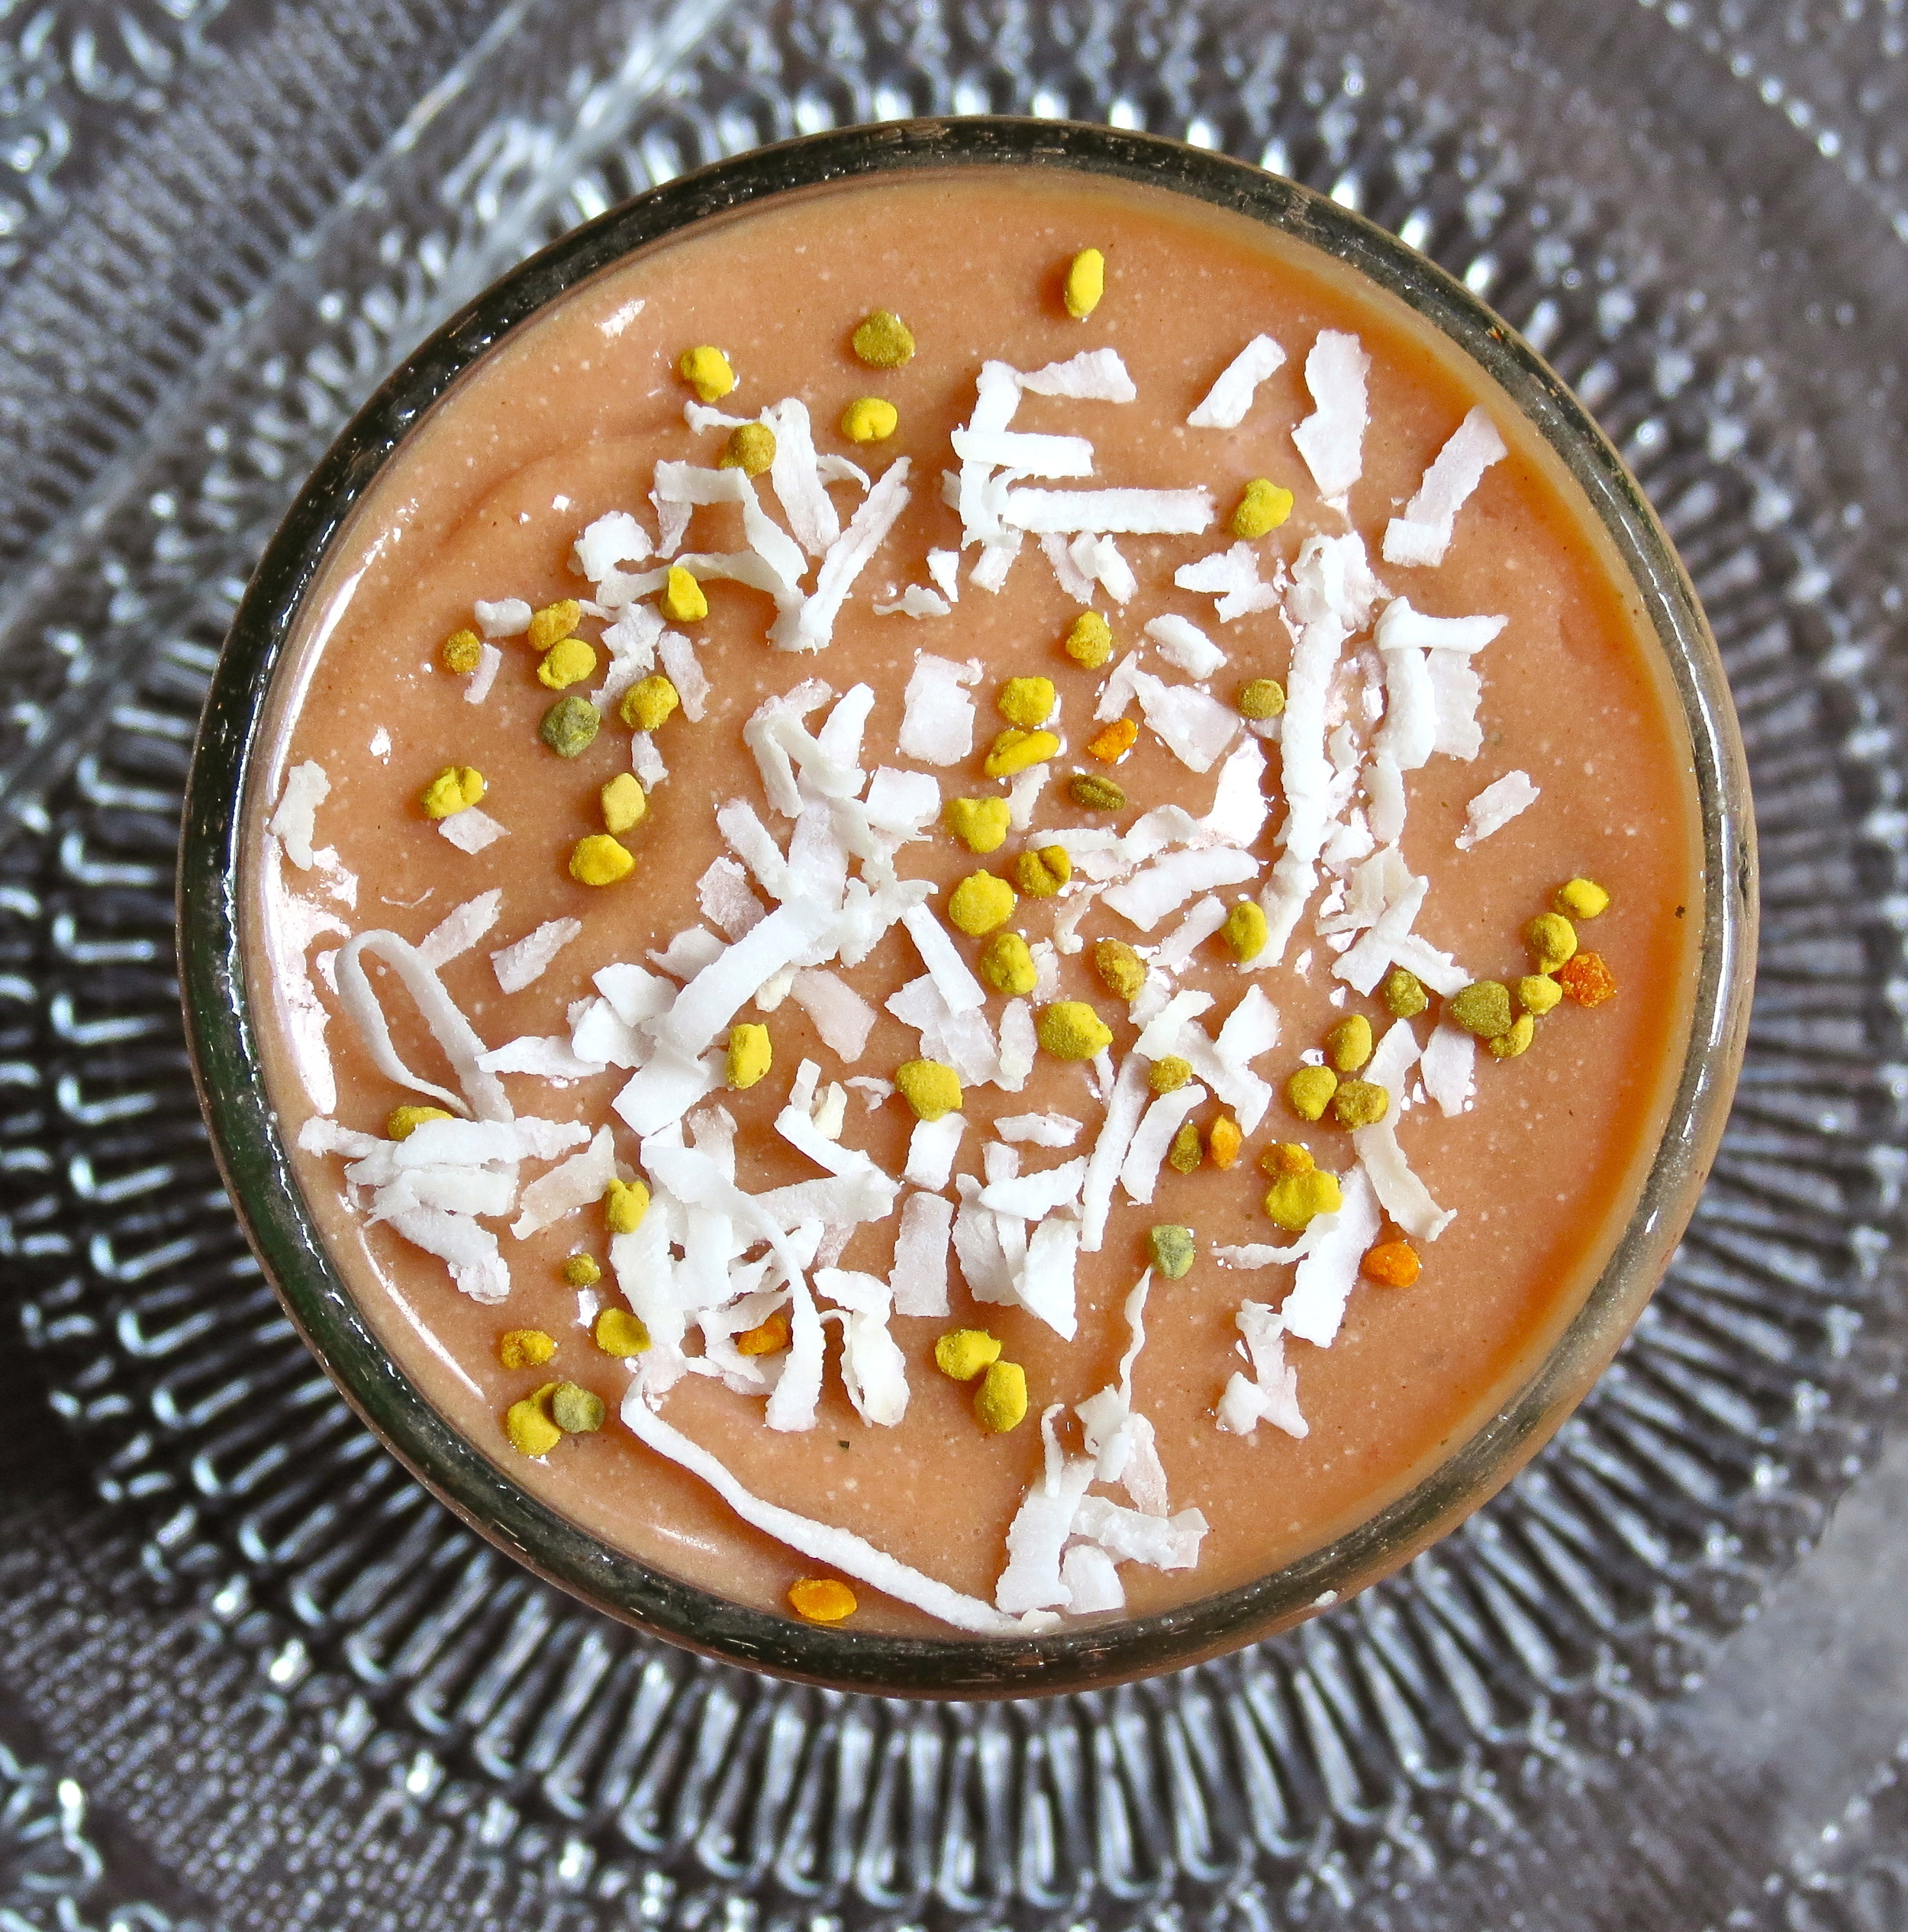 Topped with bee pollen and coconut. Ready to enjoy!